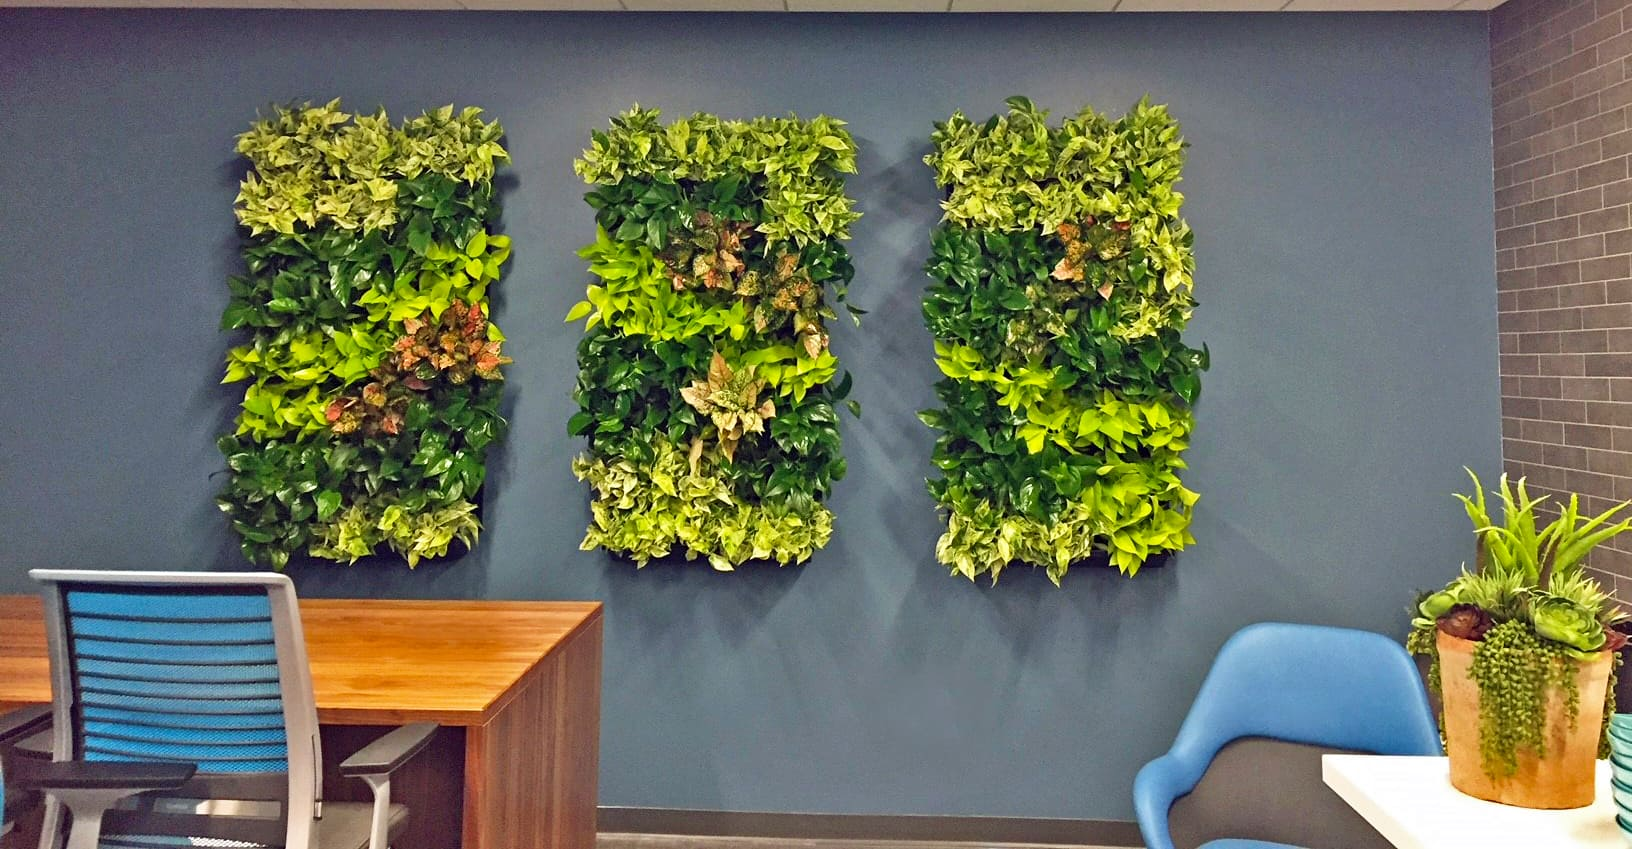 Indoor environments become healthier with the presence of plants in containers and hanging on walls as living art..